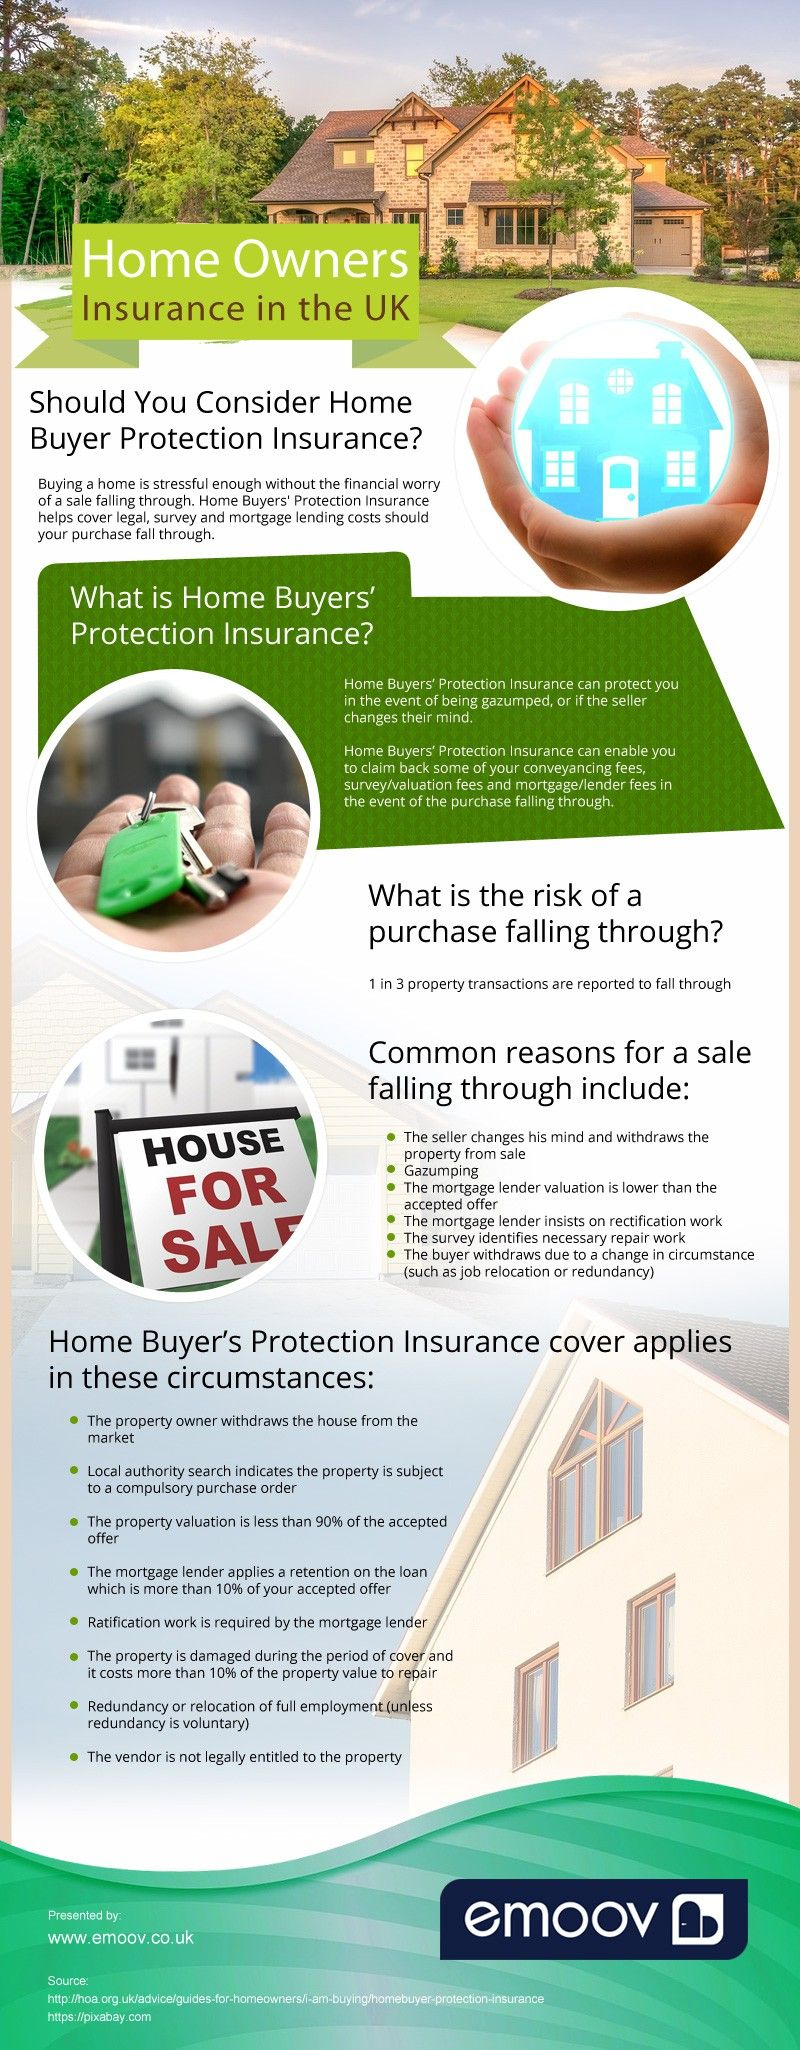 Home owners insurance in the uk business economics